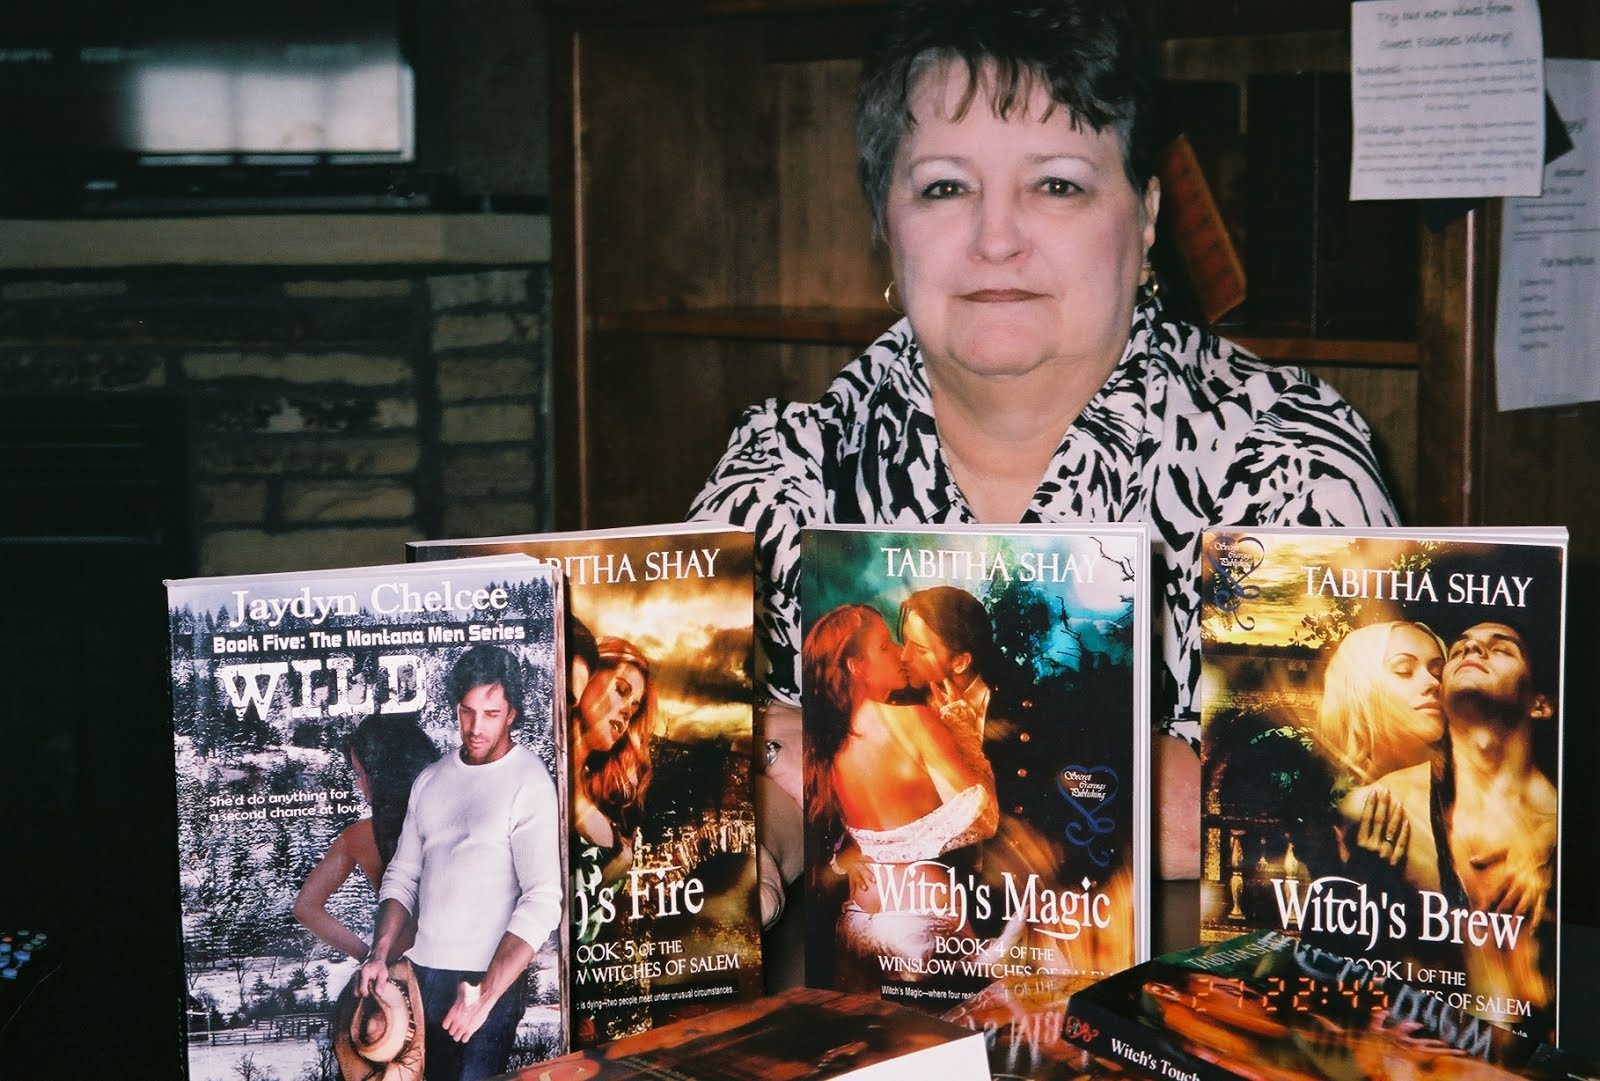 Paranormal Romance Author, Tabitha Shay